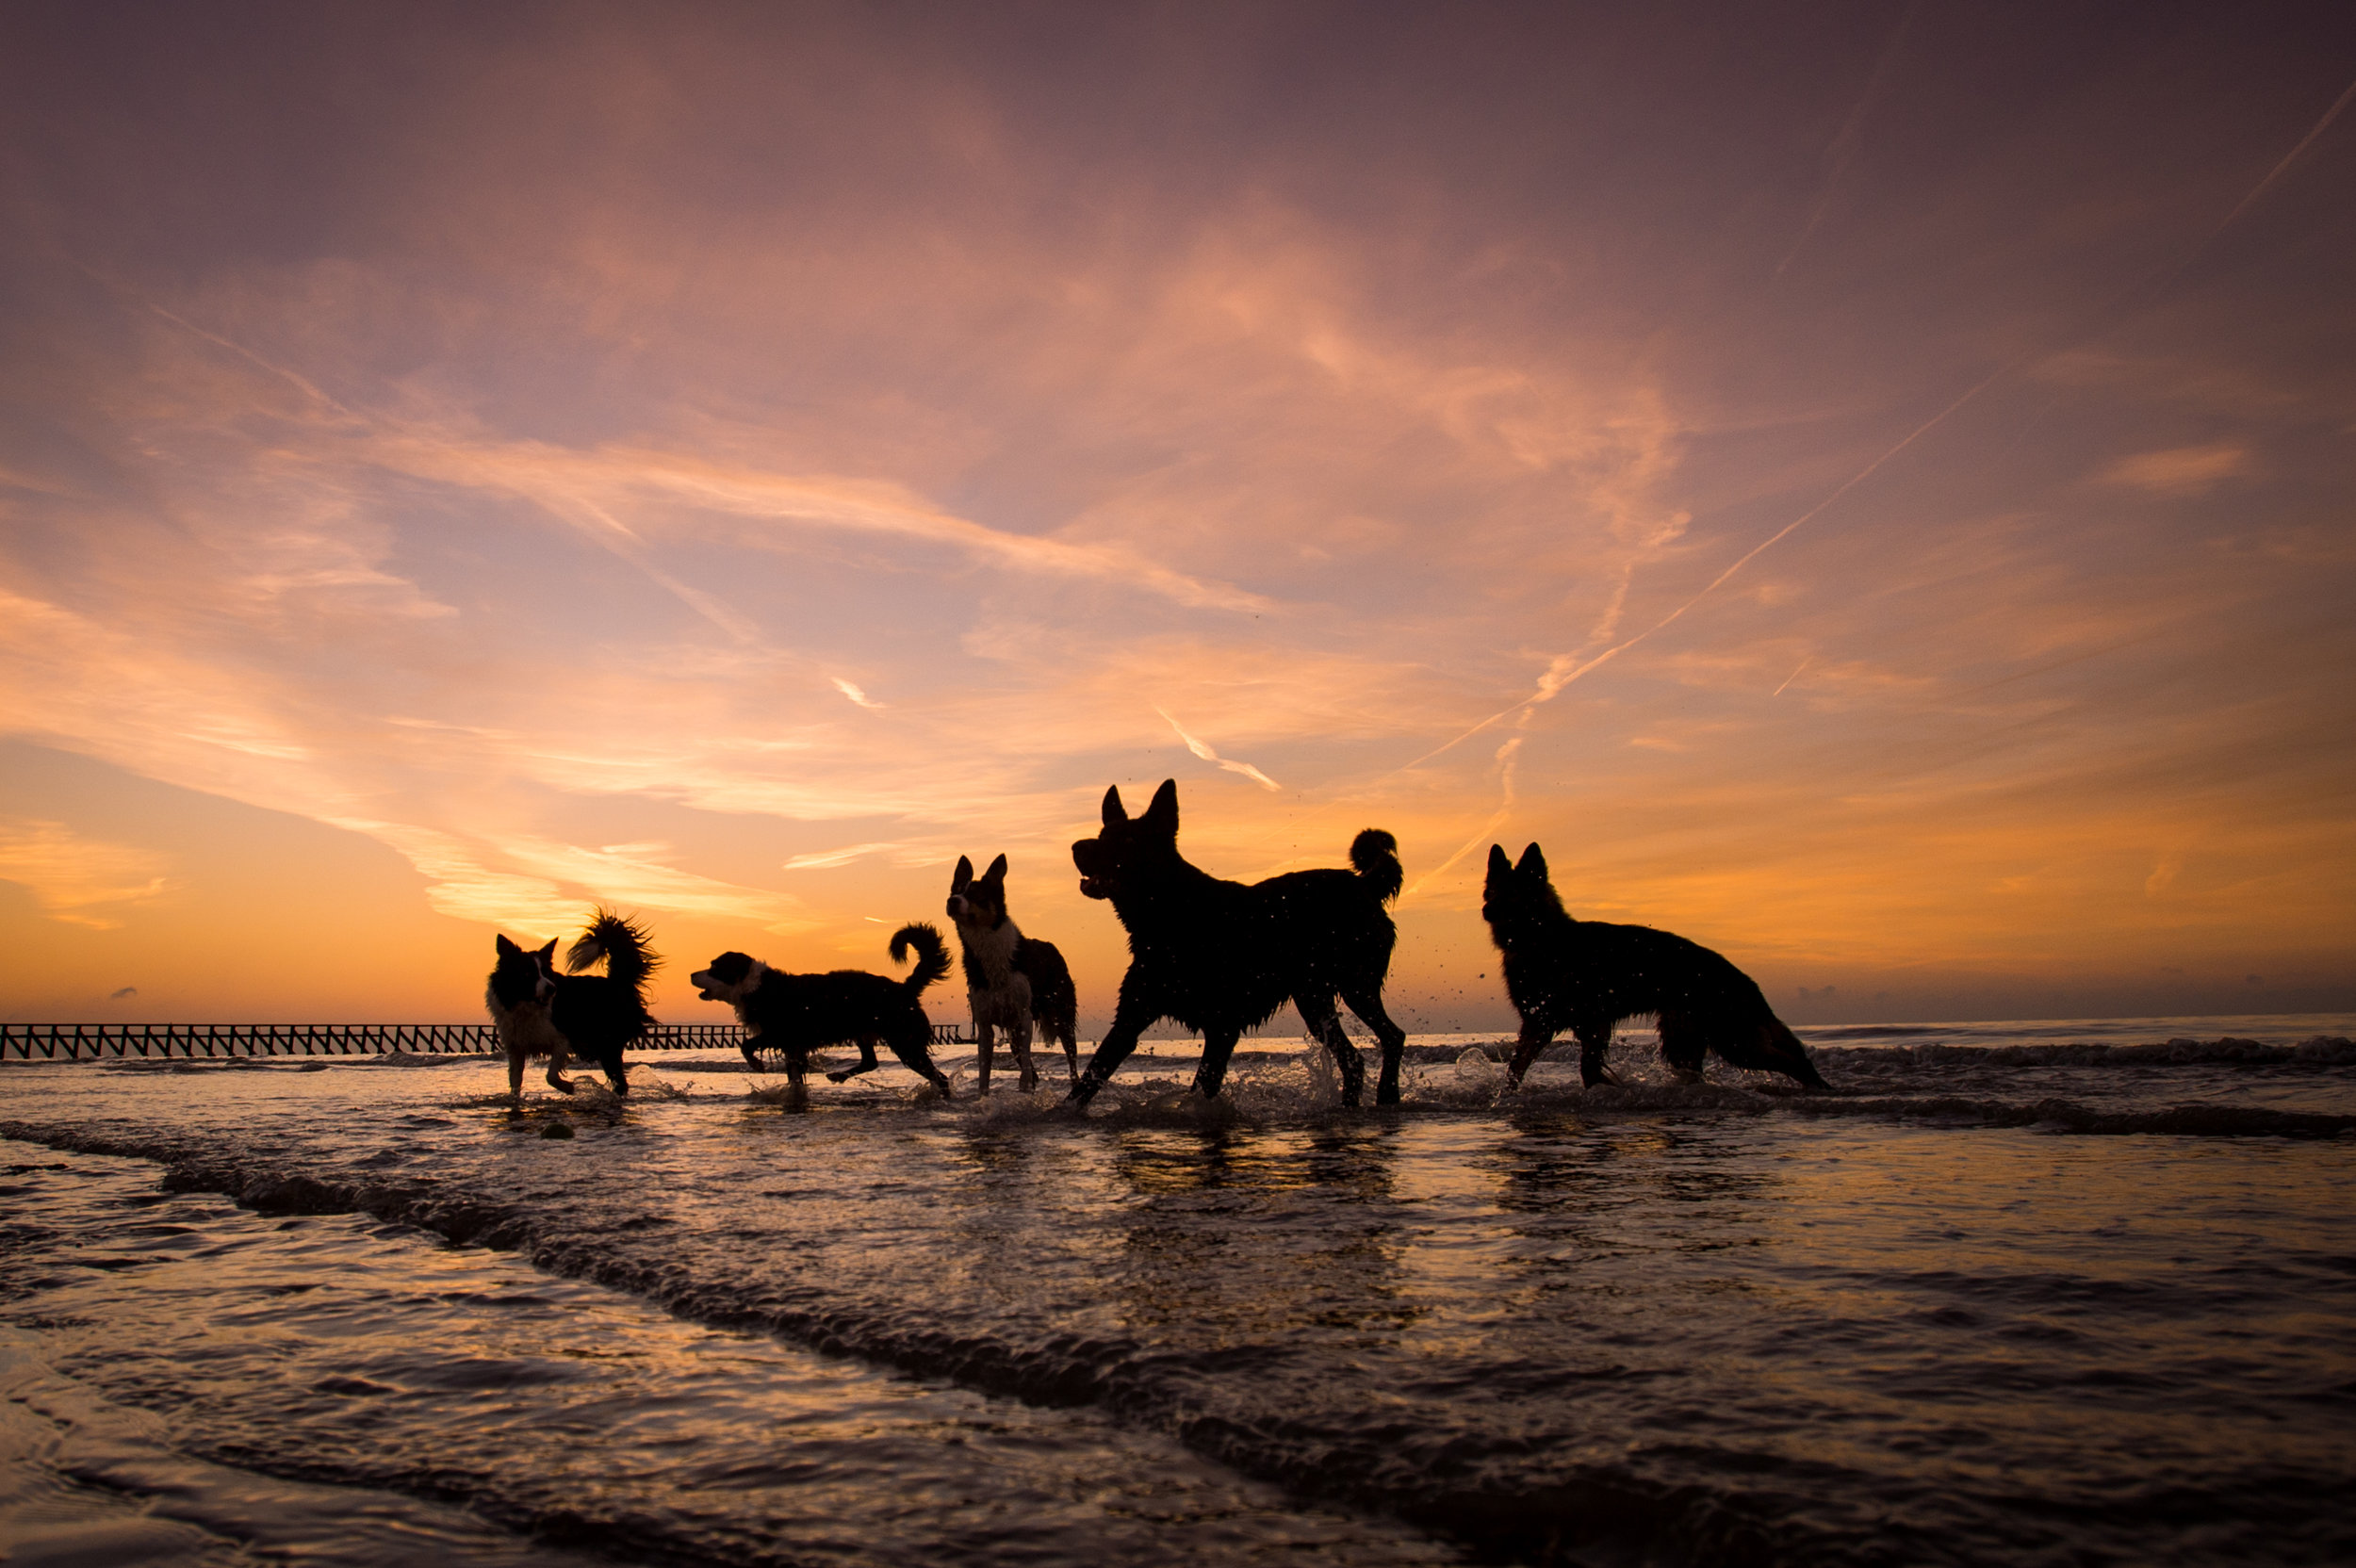 Sunset and sunrise times are especially great for fantastic lighting. These five dogs were photographed at sunrise, at which time you can get some great silhouettes. They were all just running in and out of water, not posing at all. It was lucky timing to get them all separate like this.